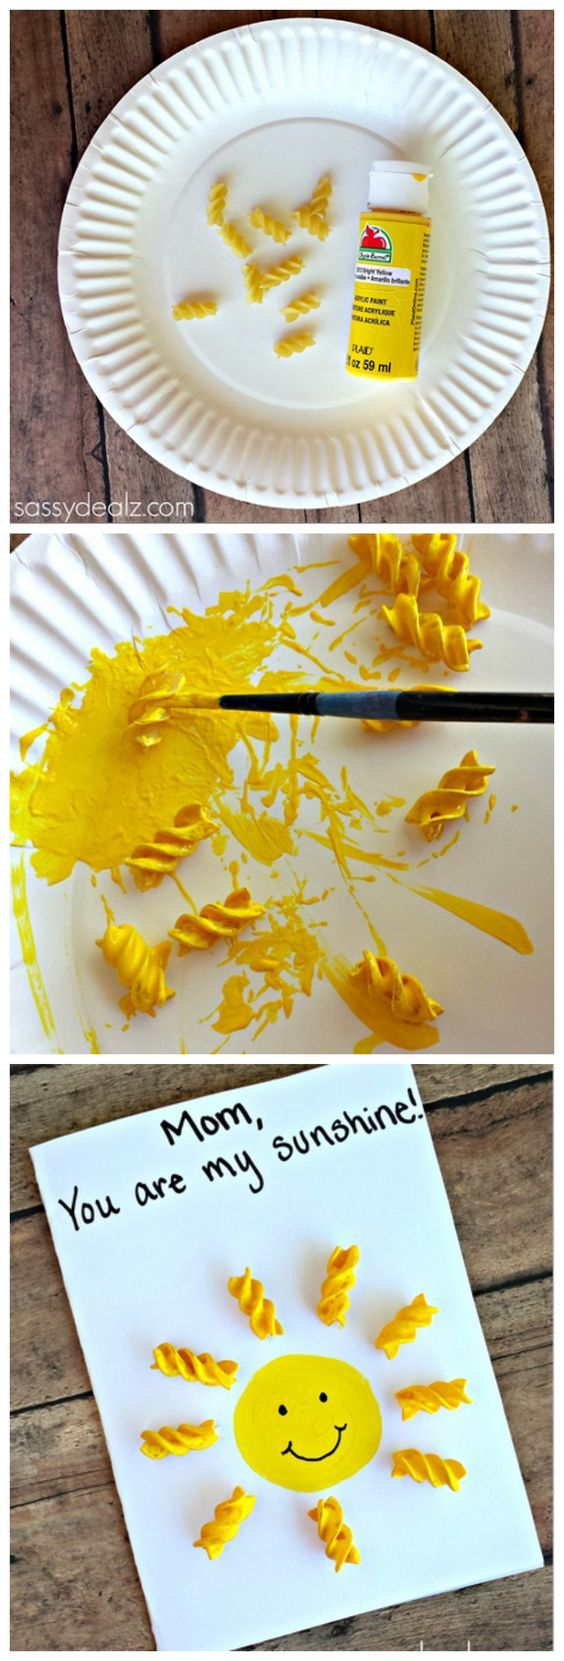 """You Are My Sunshine"" Noodle Card for Kids to Make #mothersday gift/craft 